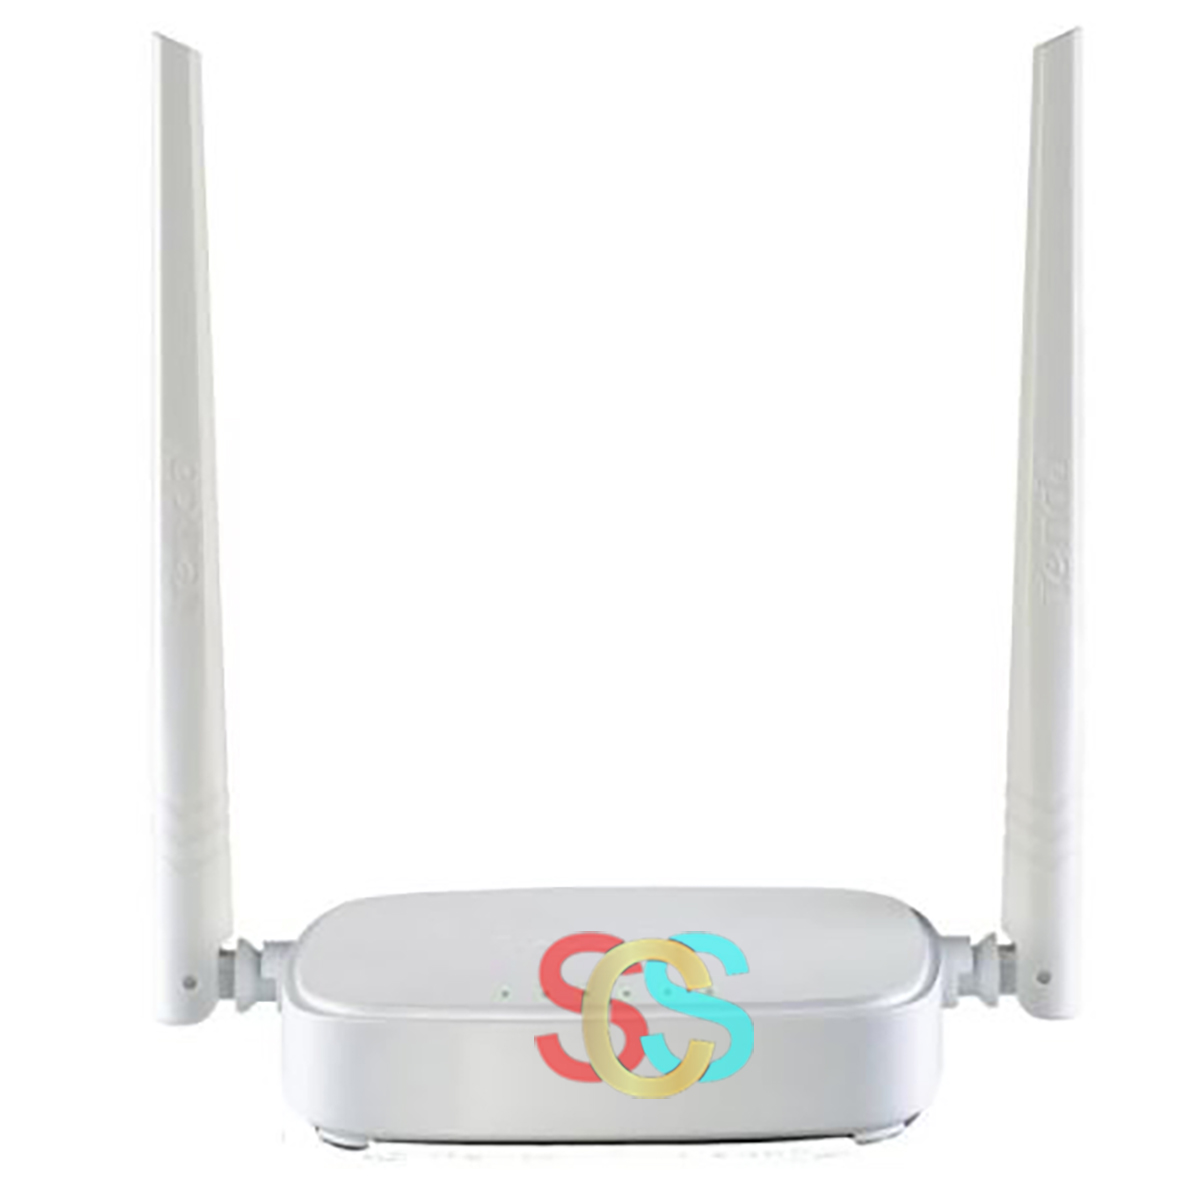 Tenda N301 300 Mbps Ethernet Single-Band Wi-Fi Router